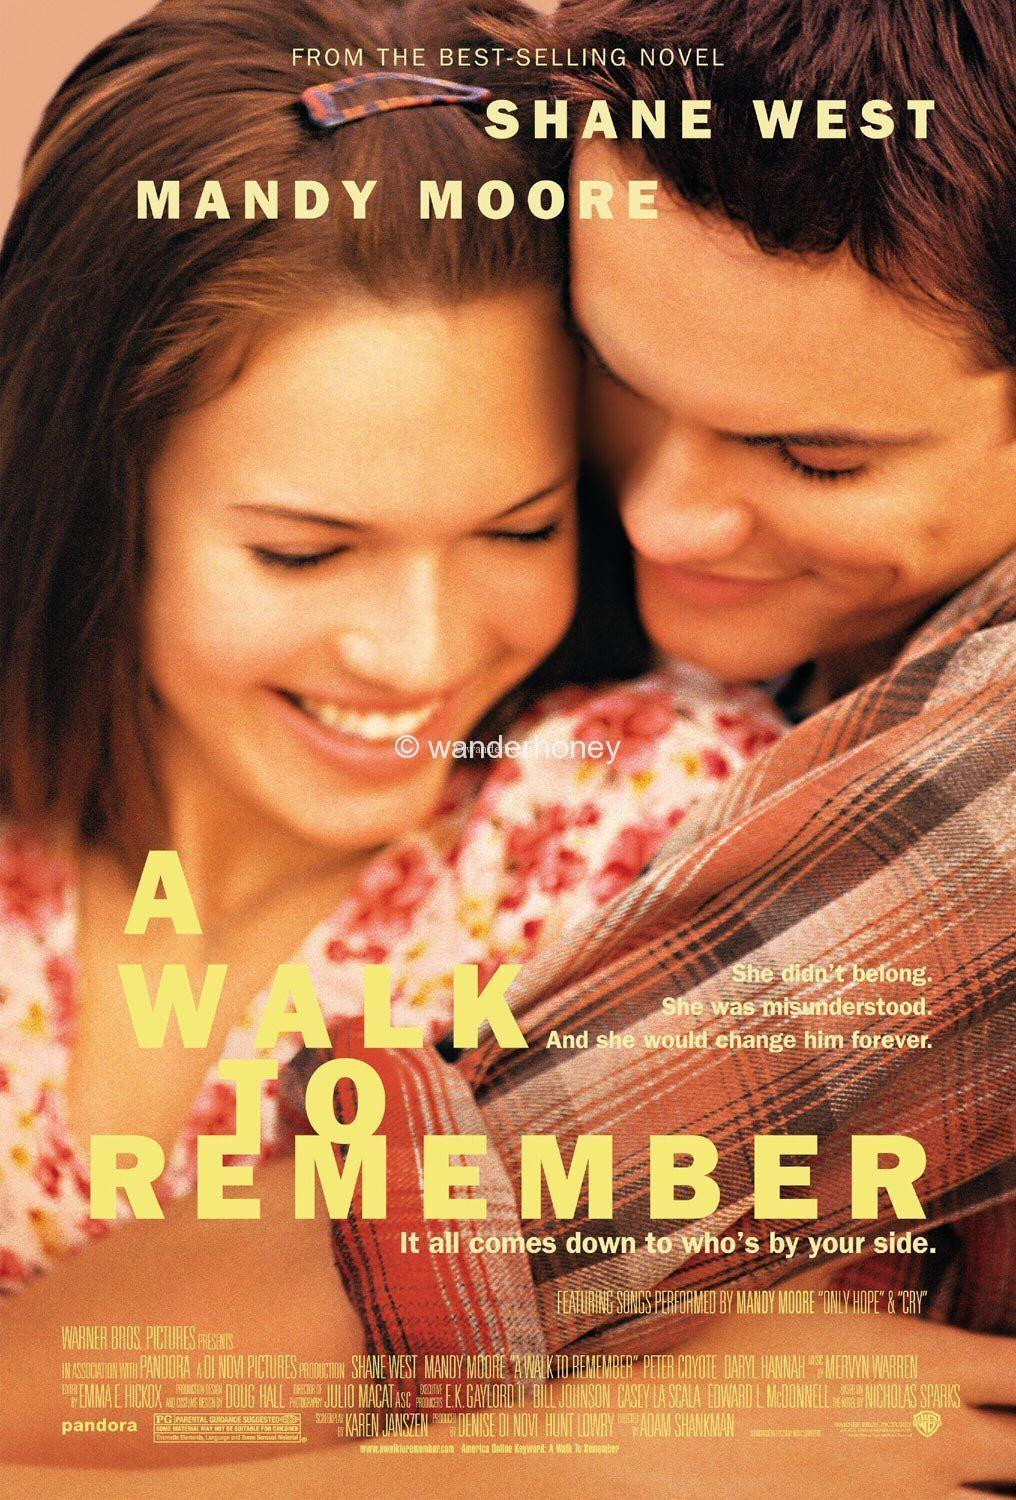 A-Walk-to-Remember-Movie-Poster-mandy-moore-15075841-1016-1500.jpg